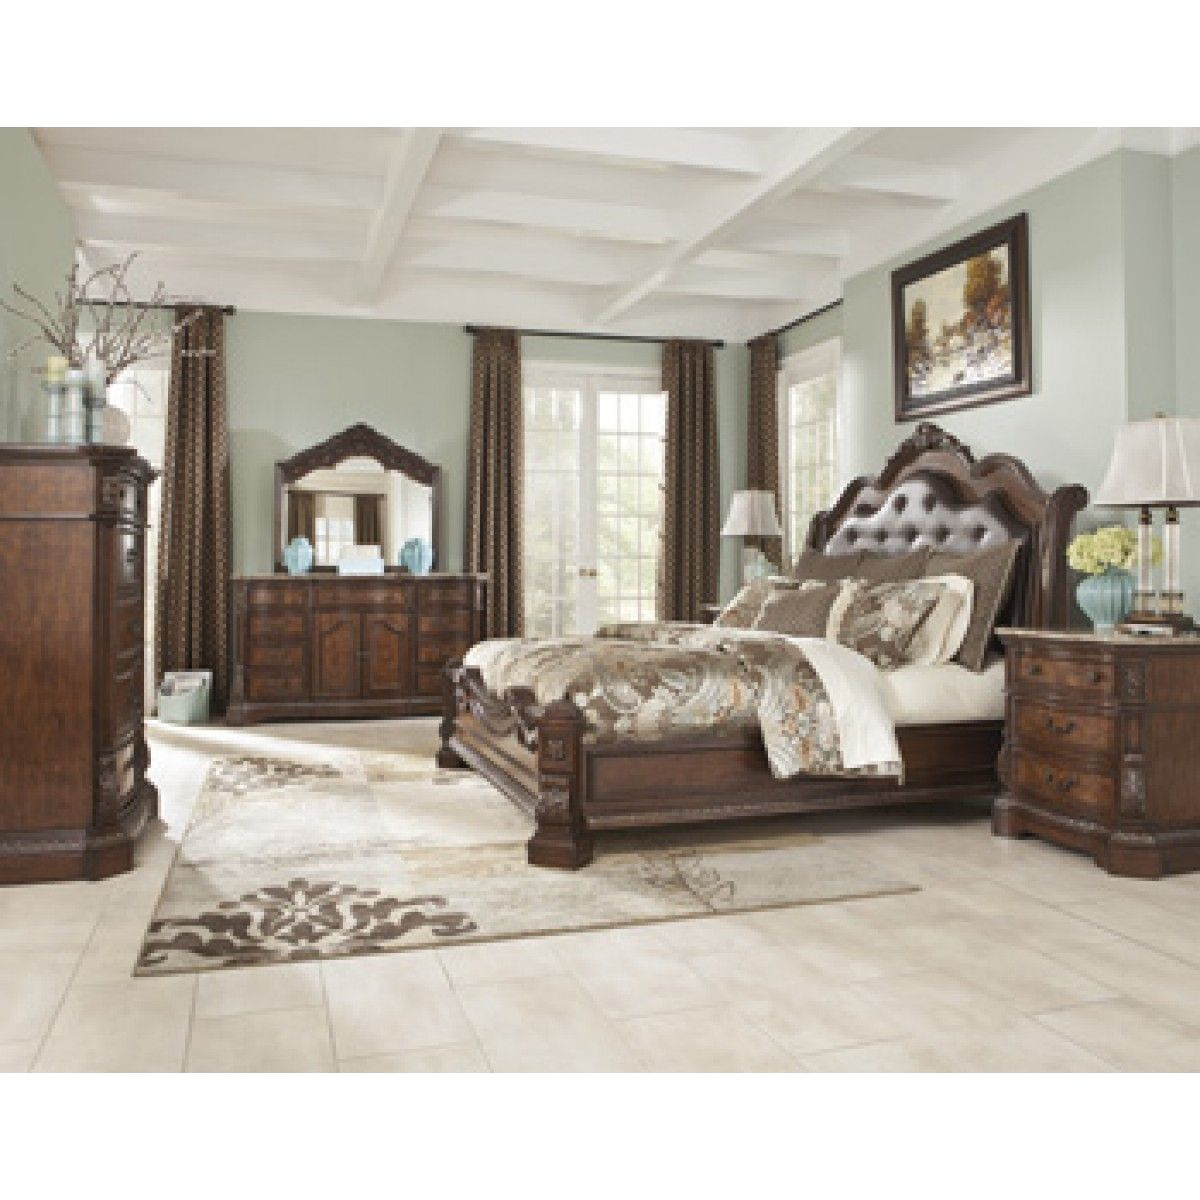 Ashley Furniture Manufacturing: Ashley+Furniture+Bedroom+Furniture